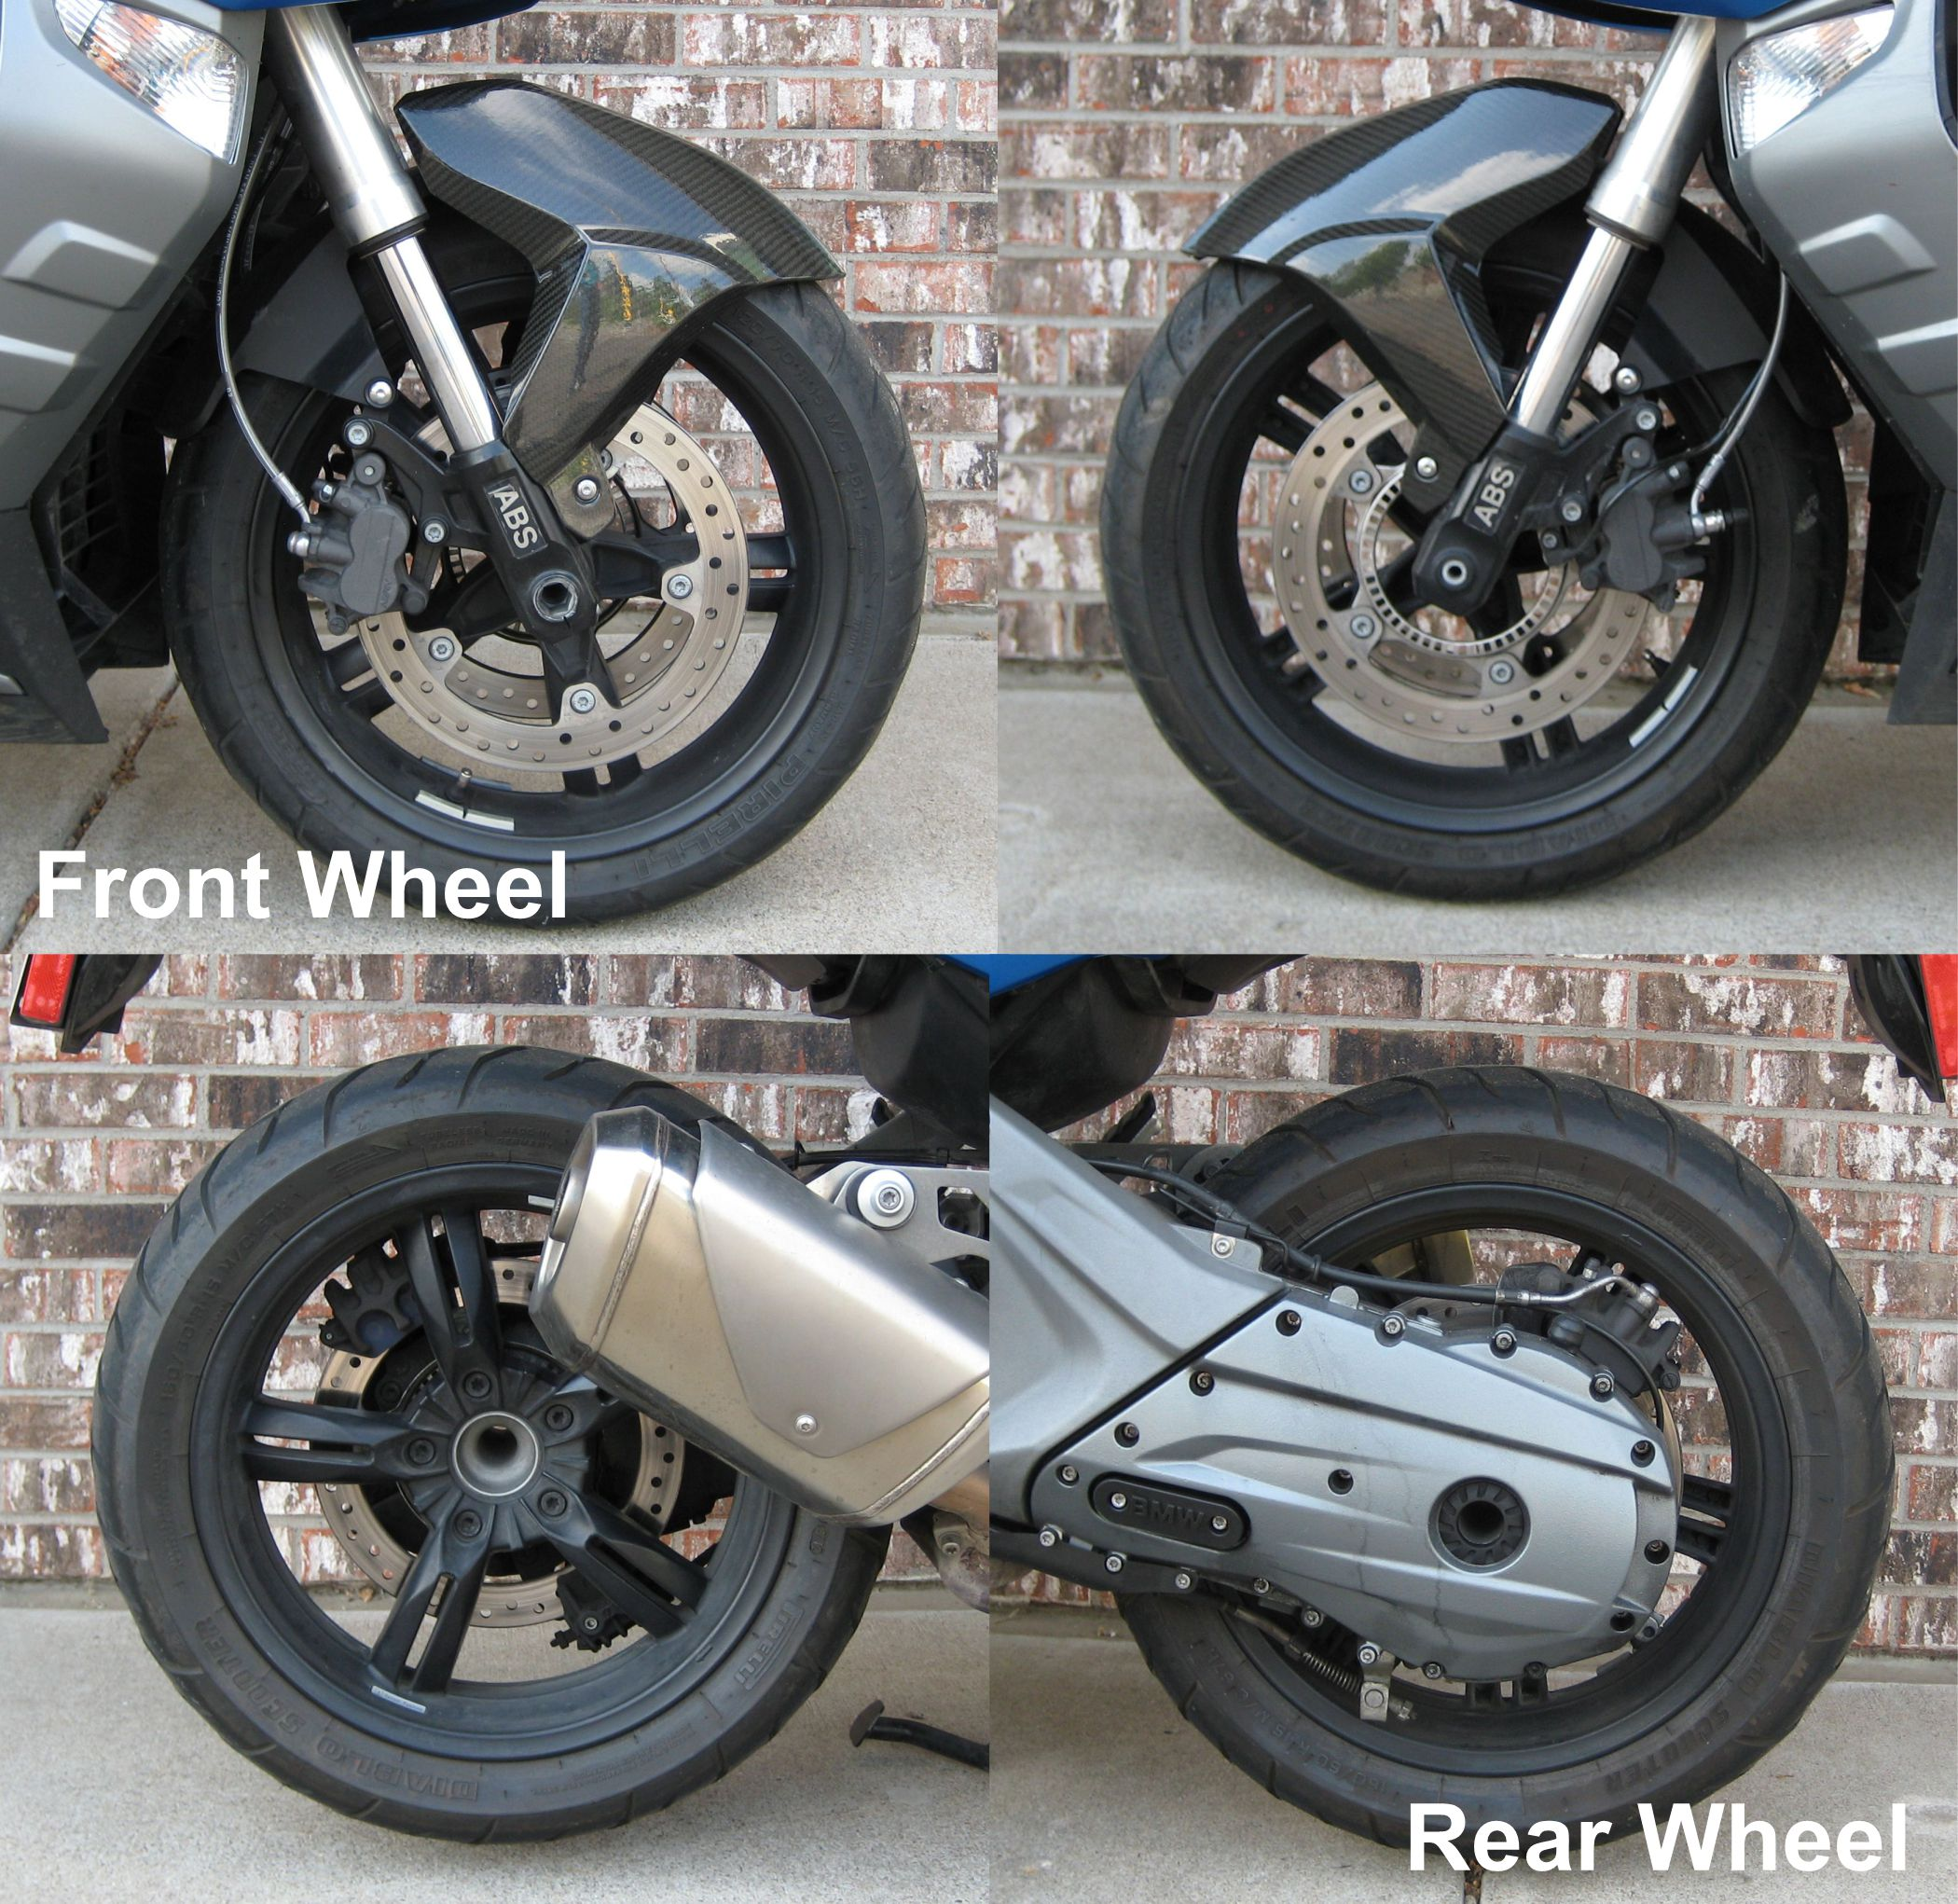 Front and Rear wheel of BMW C600 Sport